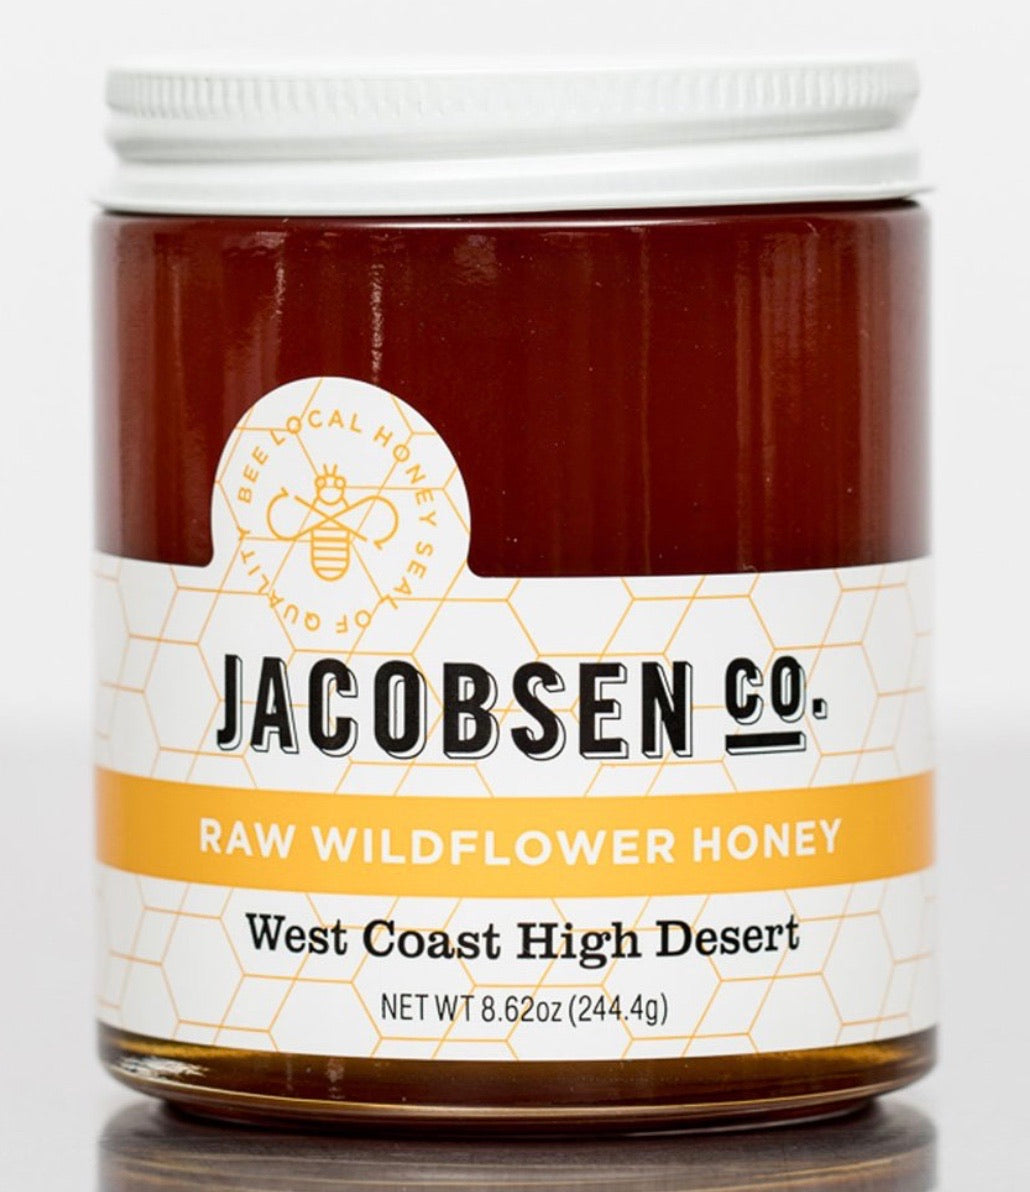 Jacobsen Raw Wildflower Honey